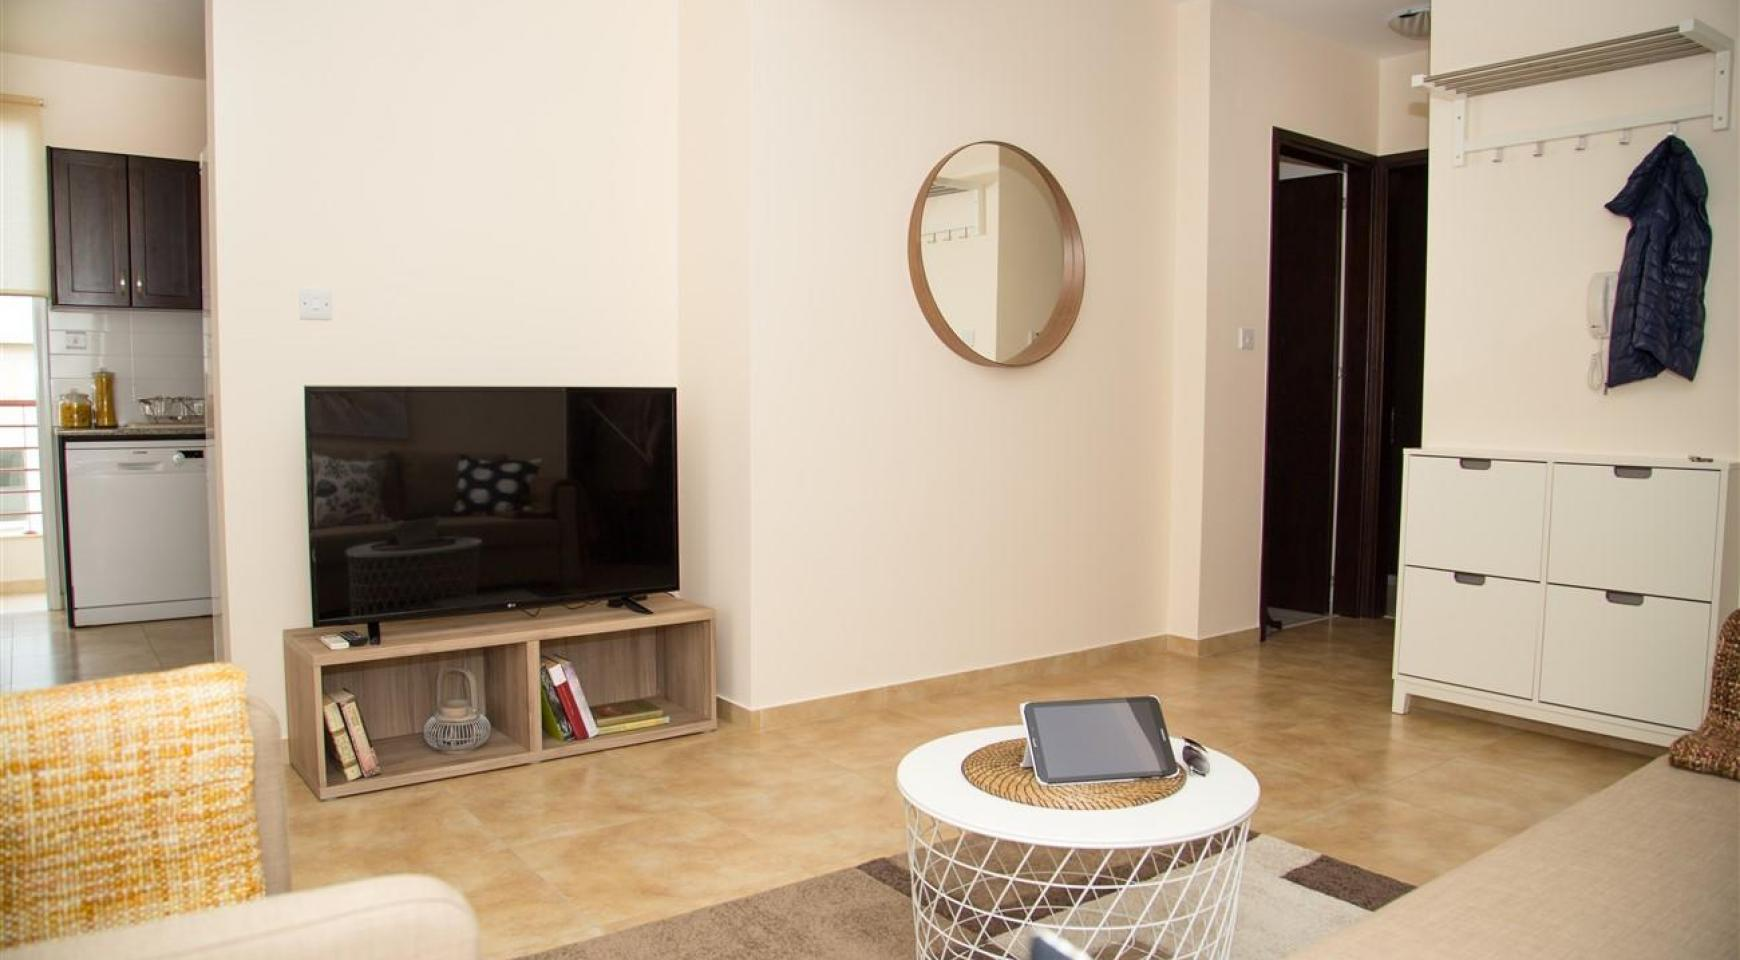 Luxury 2 Bedroom Apartment Frida 201 in the Tourist Area - 7